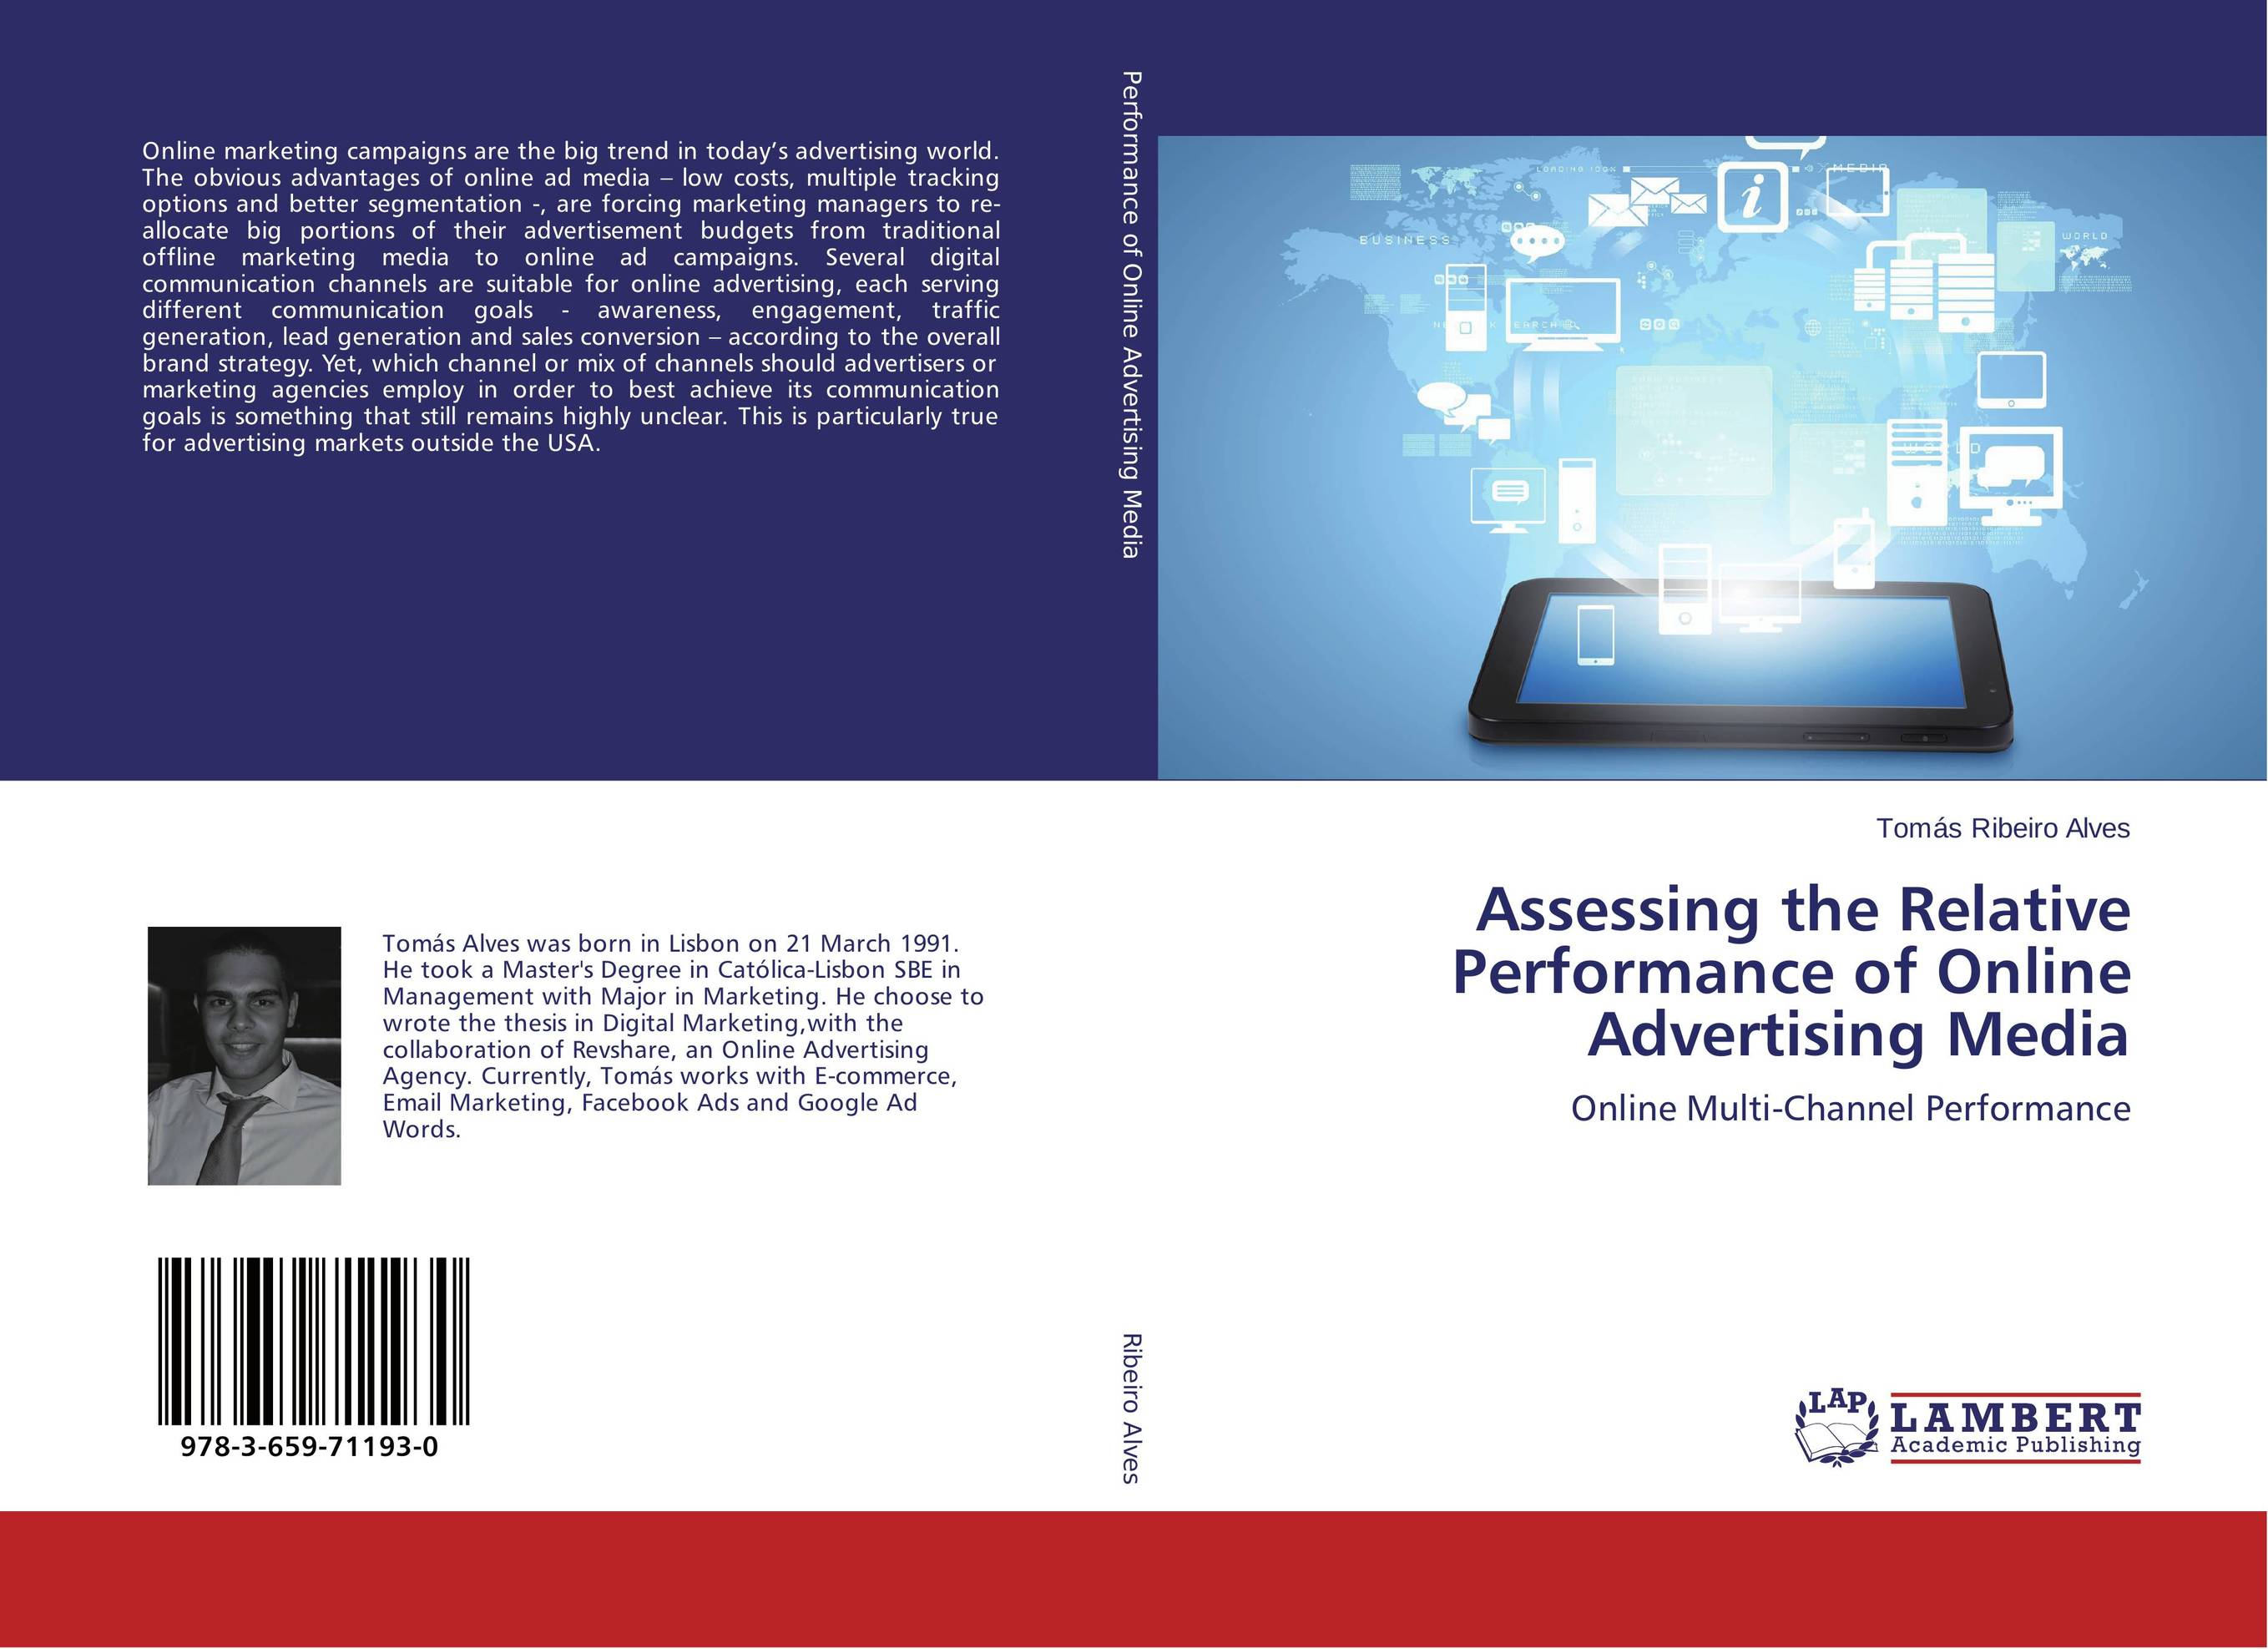 Assessing the Relative Performance of Online Advertising Media marketing channels